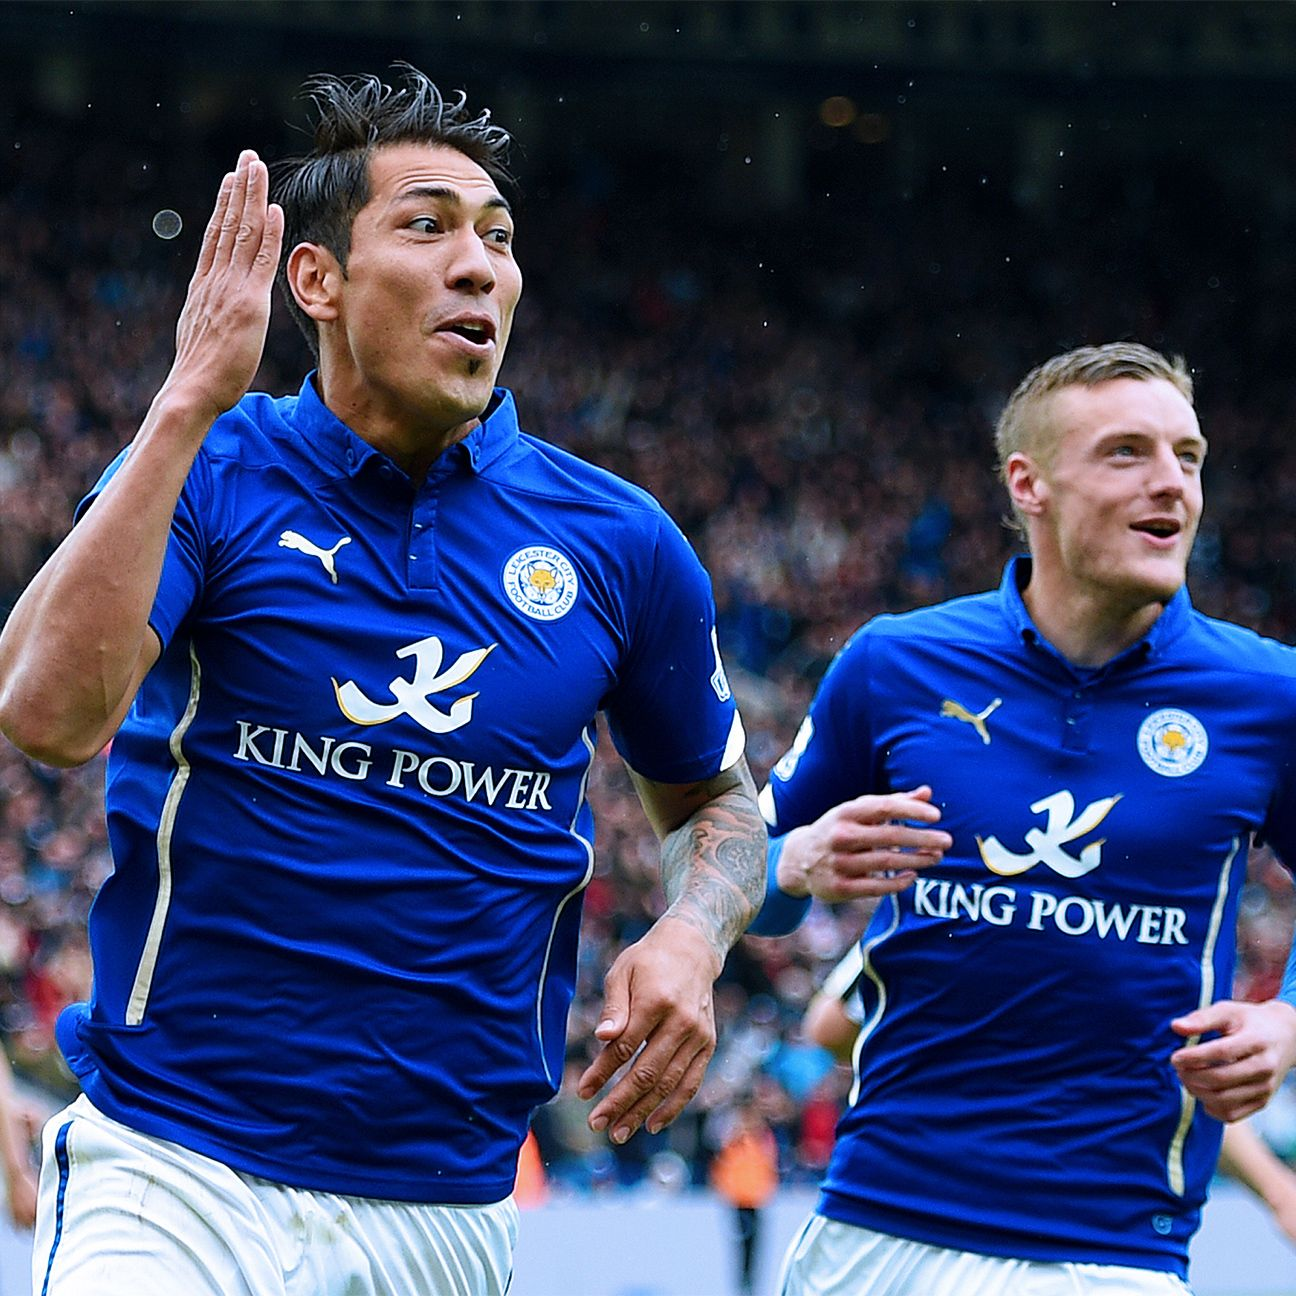 Leo Ulloa has found his goal-scoring form at the right time for Leicester.